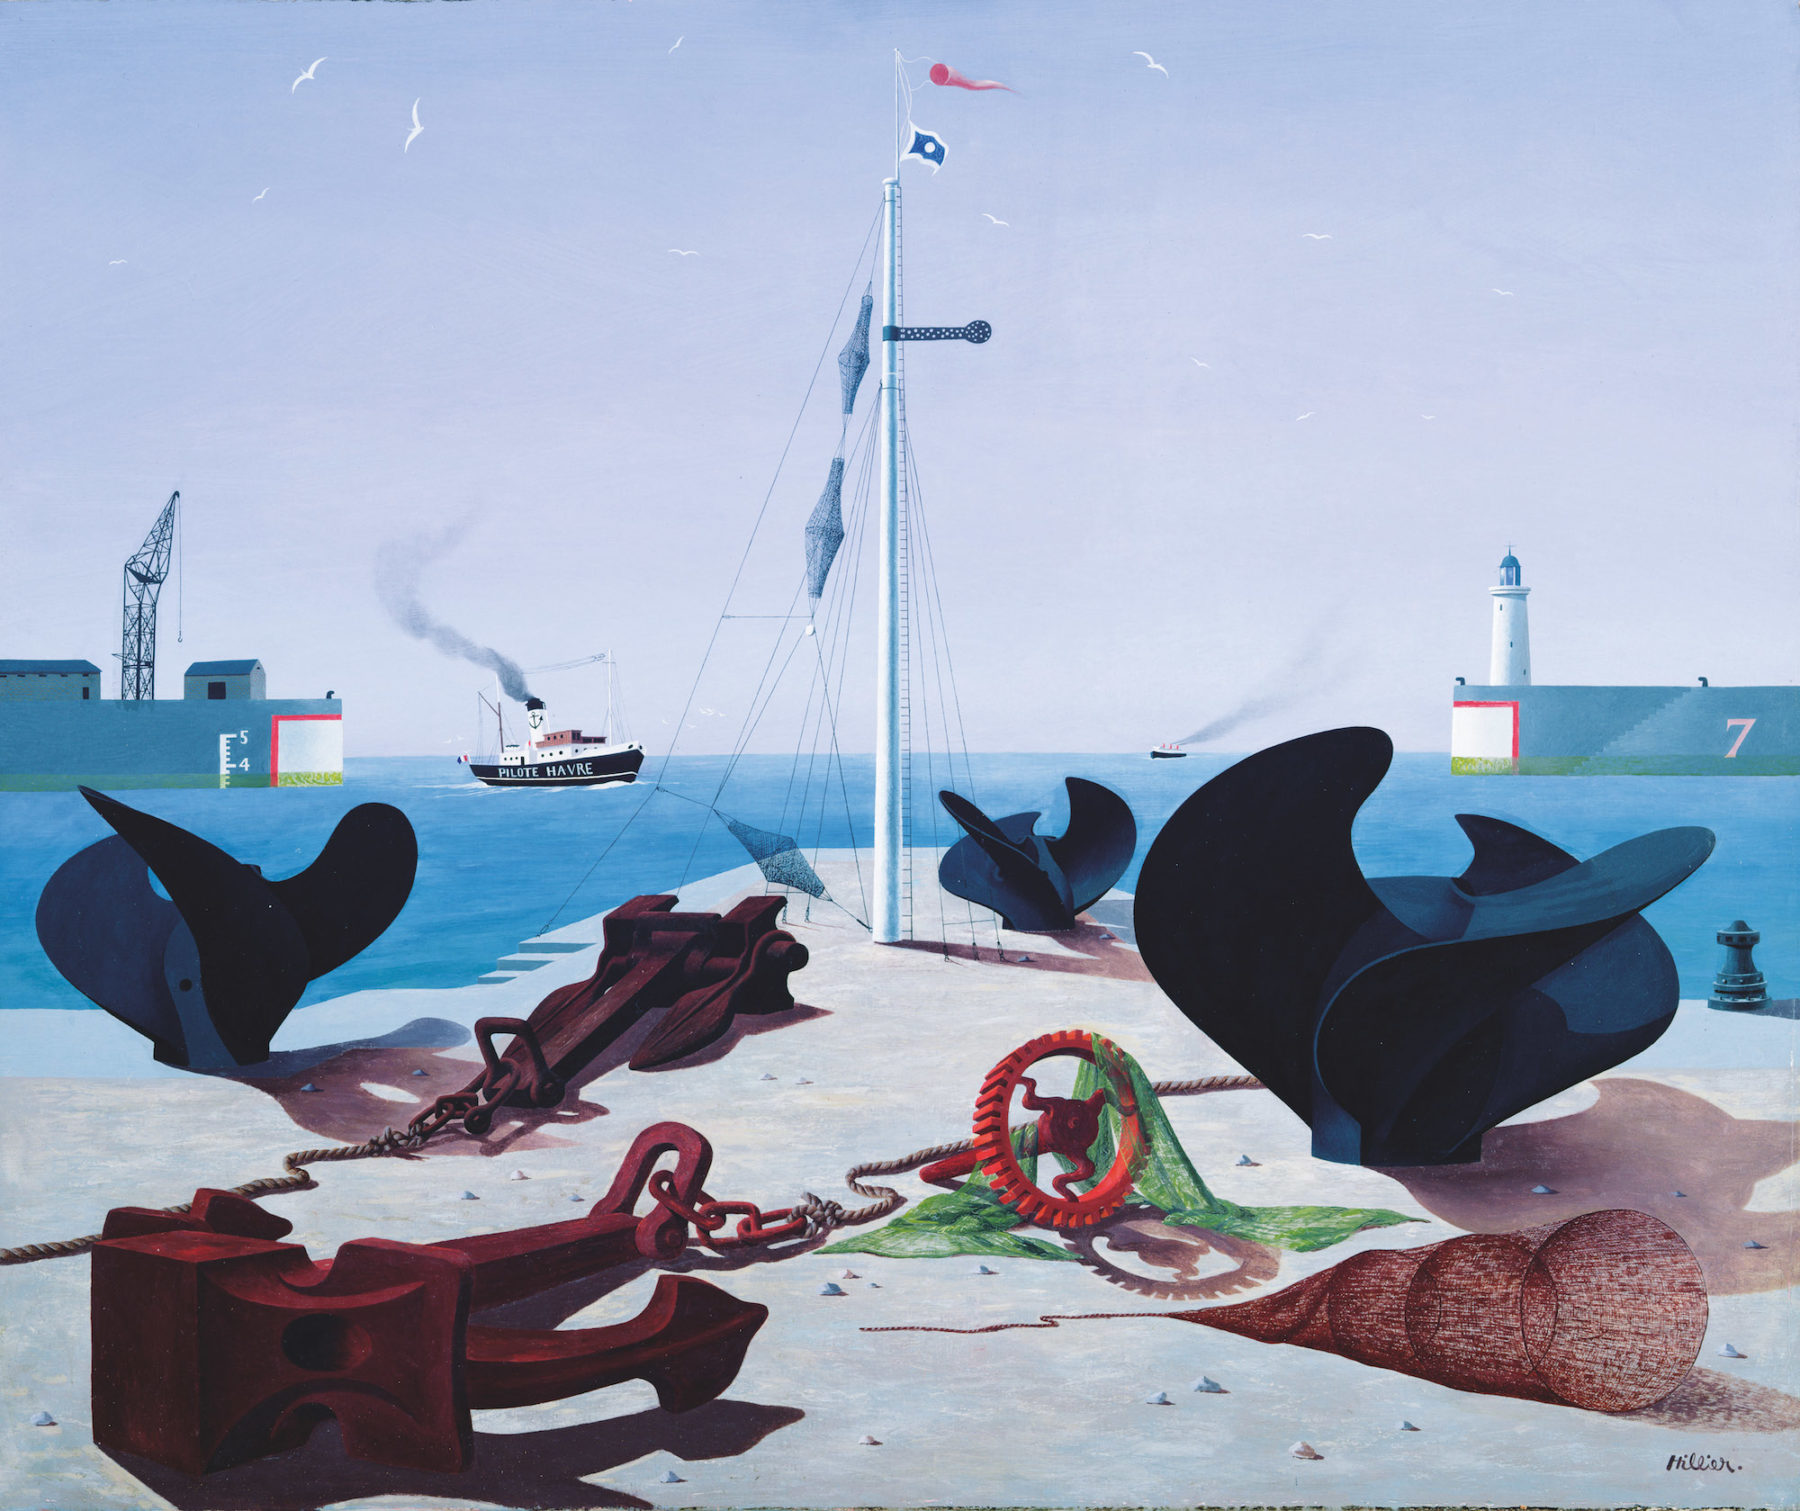 A jetty is strewn with rust coloured anchors, propellors and fishing nets. A mast rises at the end of the jetty - and centre of the picture - with a red flag flying in the wind at the top. Behind is a deep blue sea with a steam boat called PILOTE HAVRE journeying to shore. A crane can be seen on top of a jetty on the horizon to the left; to the right is a jetty with a white lighthouse. A large purple blue sky with small white birds overlooks the composition.